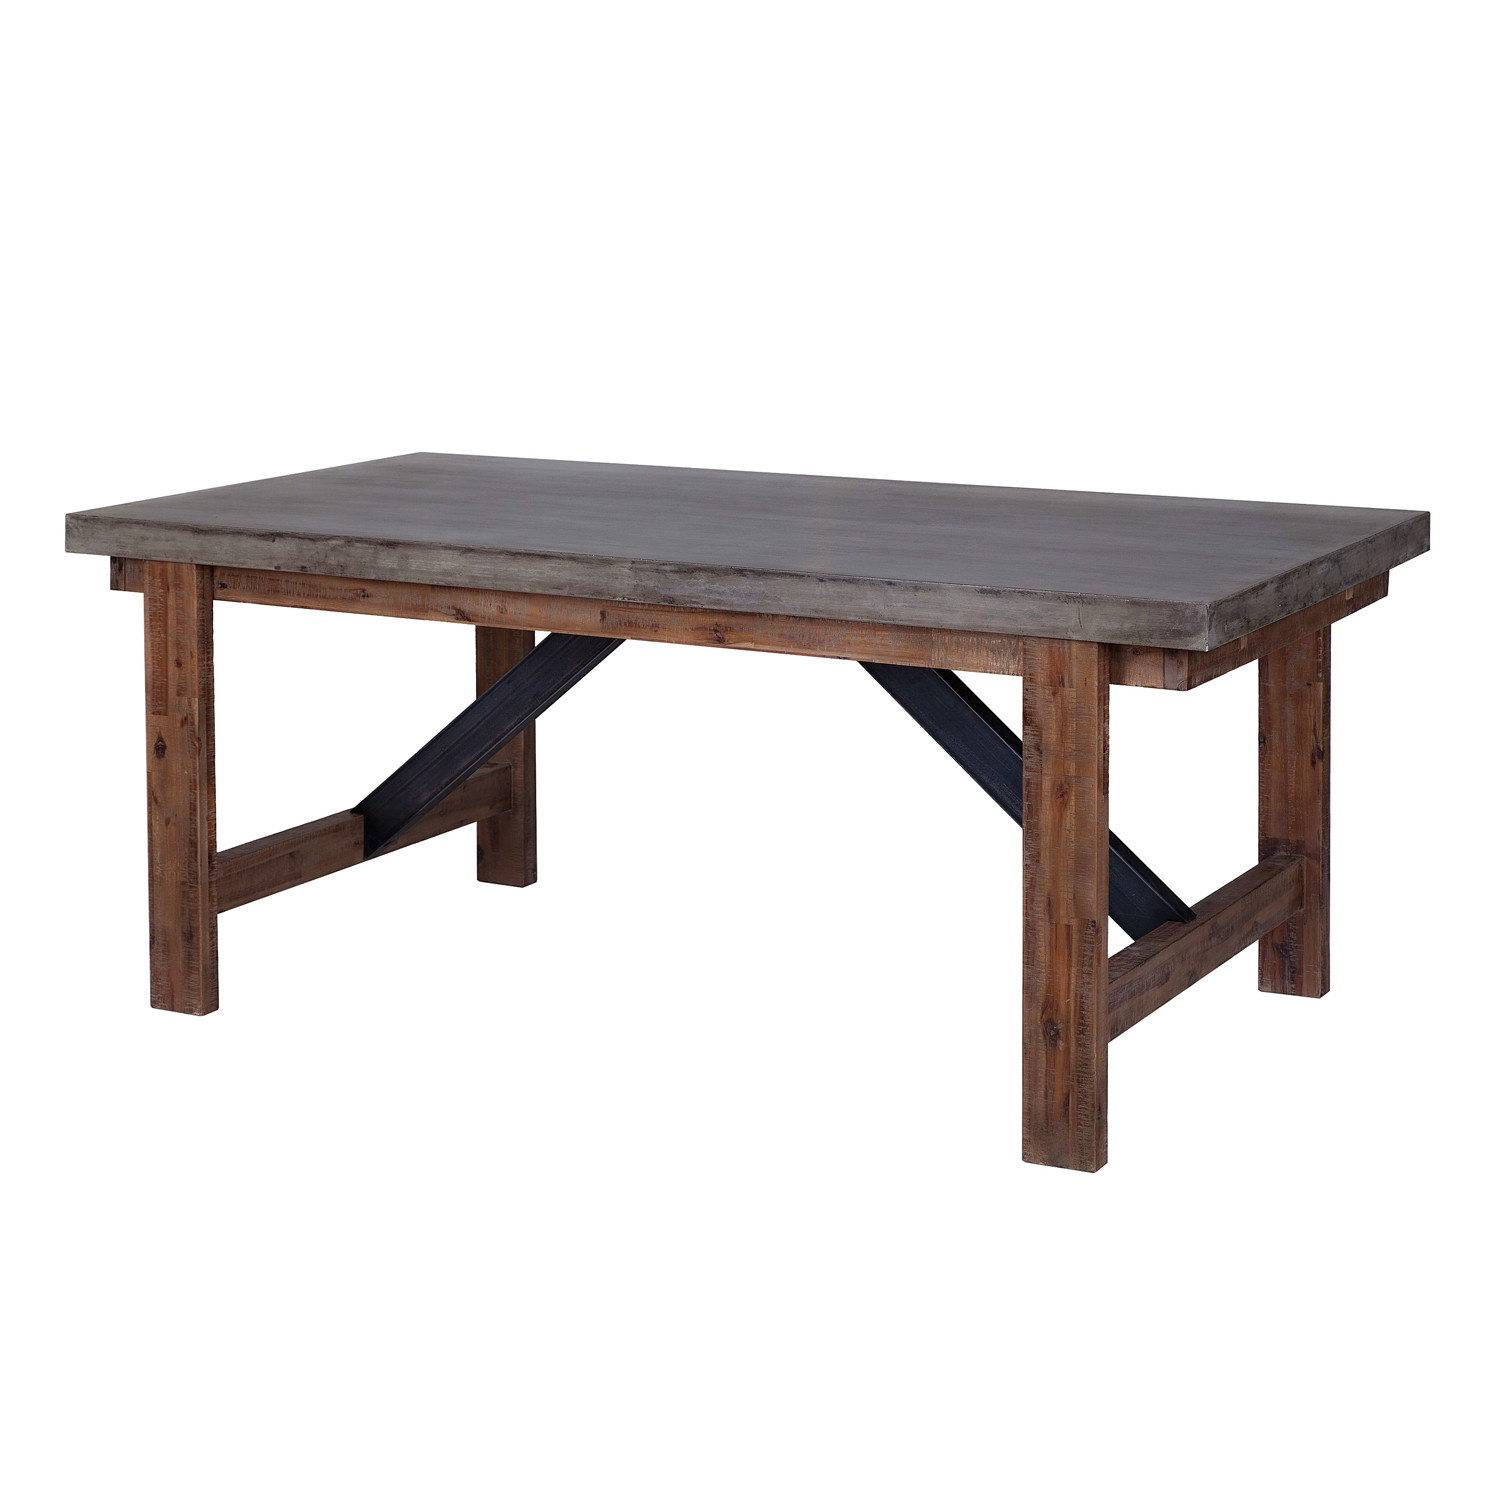 Vega Dining Table Concrete Top Furniture Maison Touch of Modern